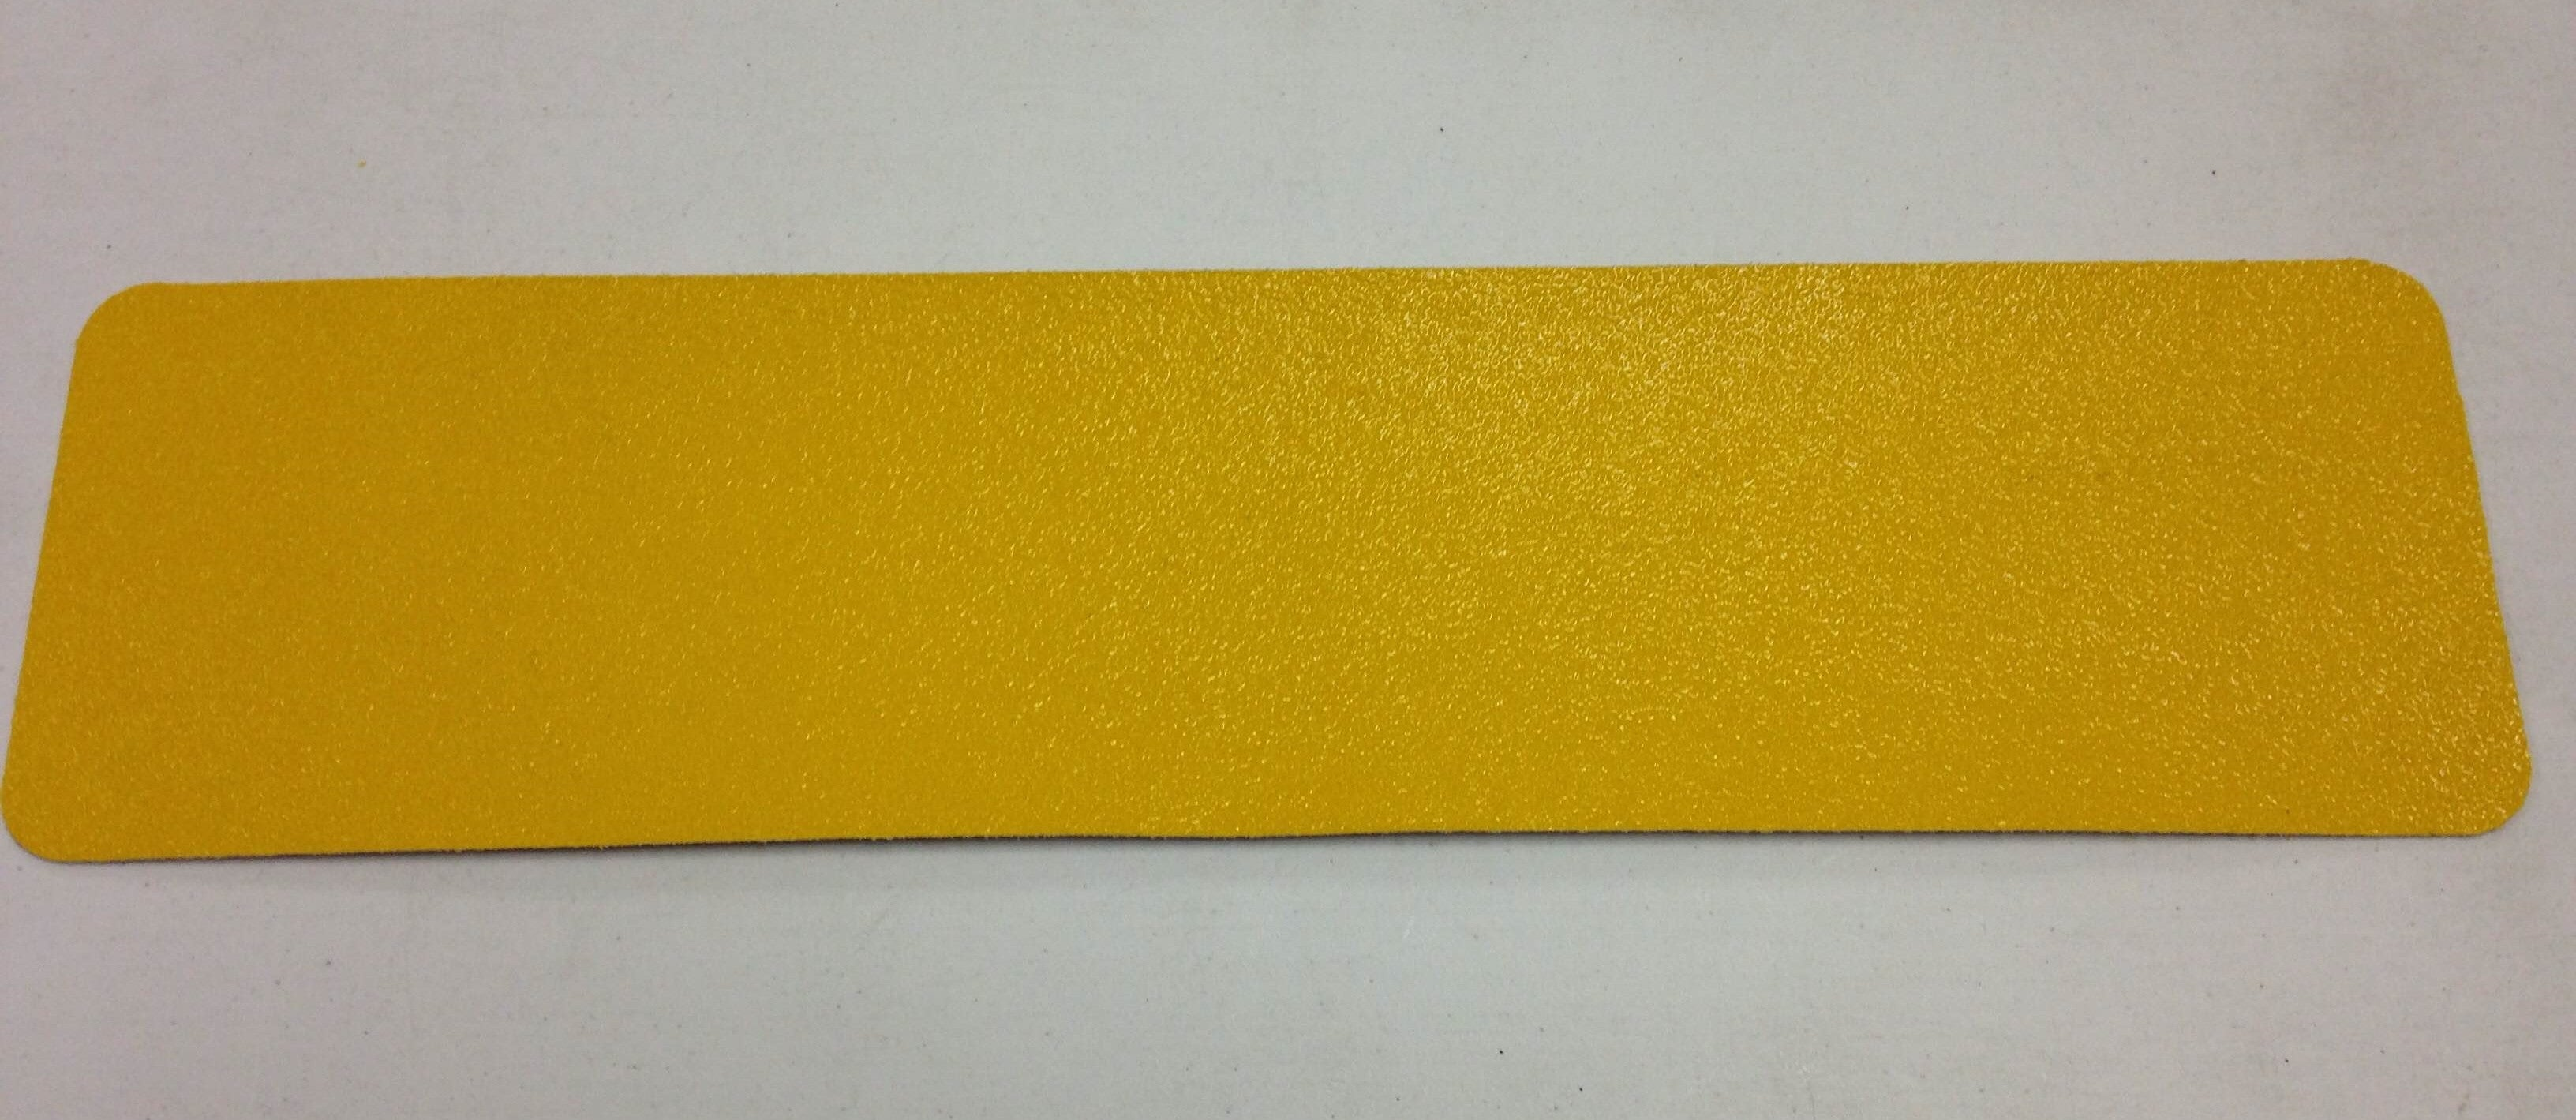 "6"" X 24"" Tread Extreme Adhesive Abrasive Medium Grit Yellow SOLD PER PIECE"